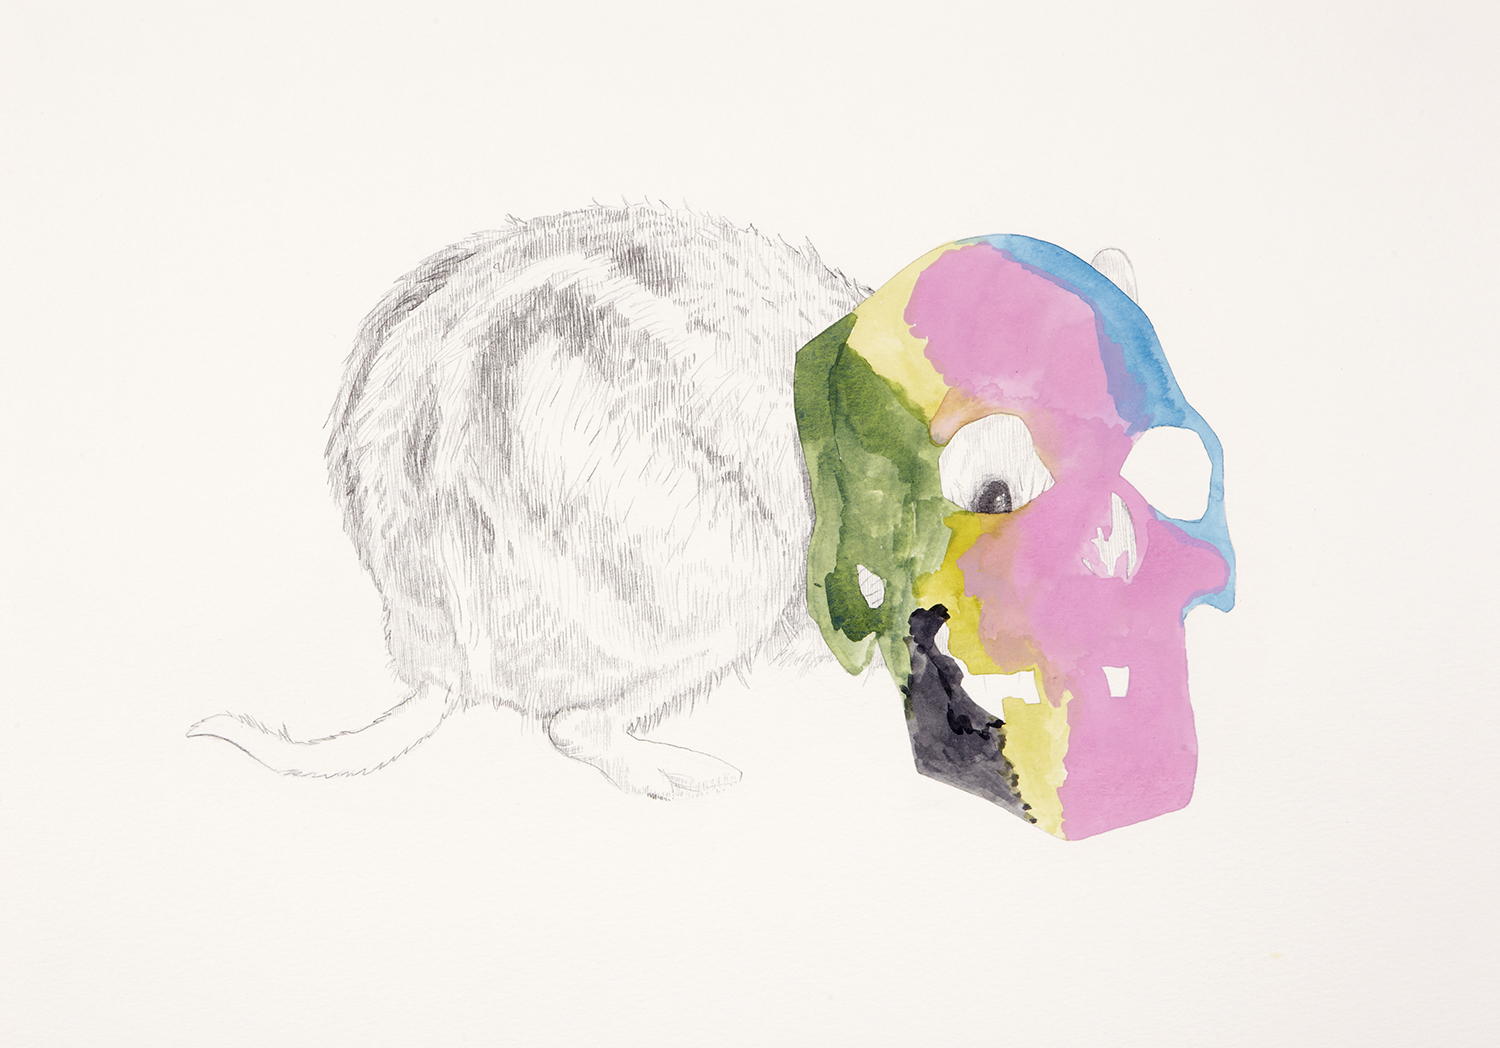 Skull Centric Behaviour #11, 2011, Watercolour and pencil on paper, 42.0 x 29.7 cm, Photo: Sam Scoufos